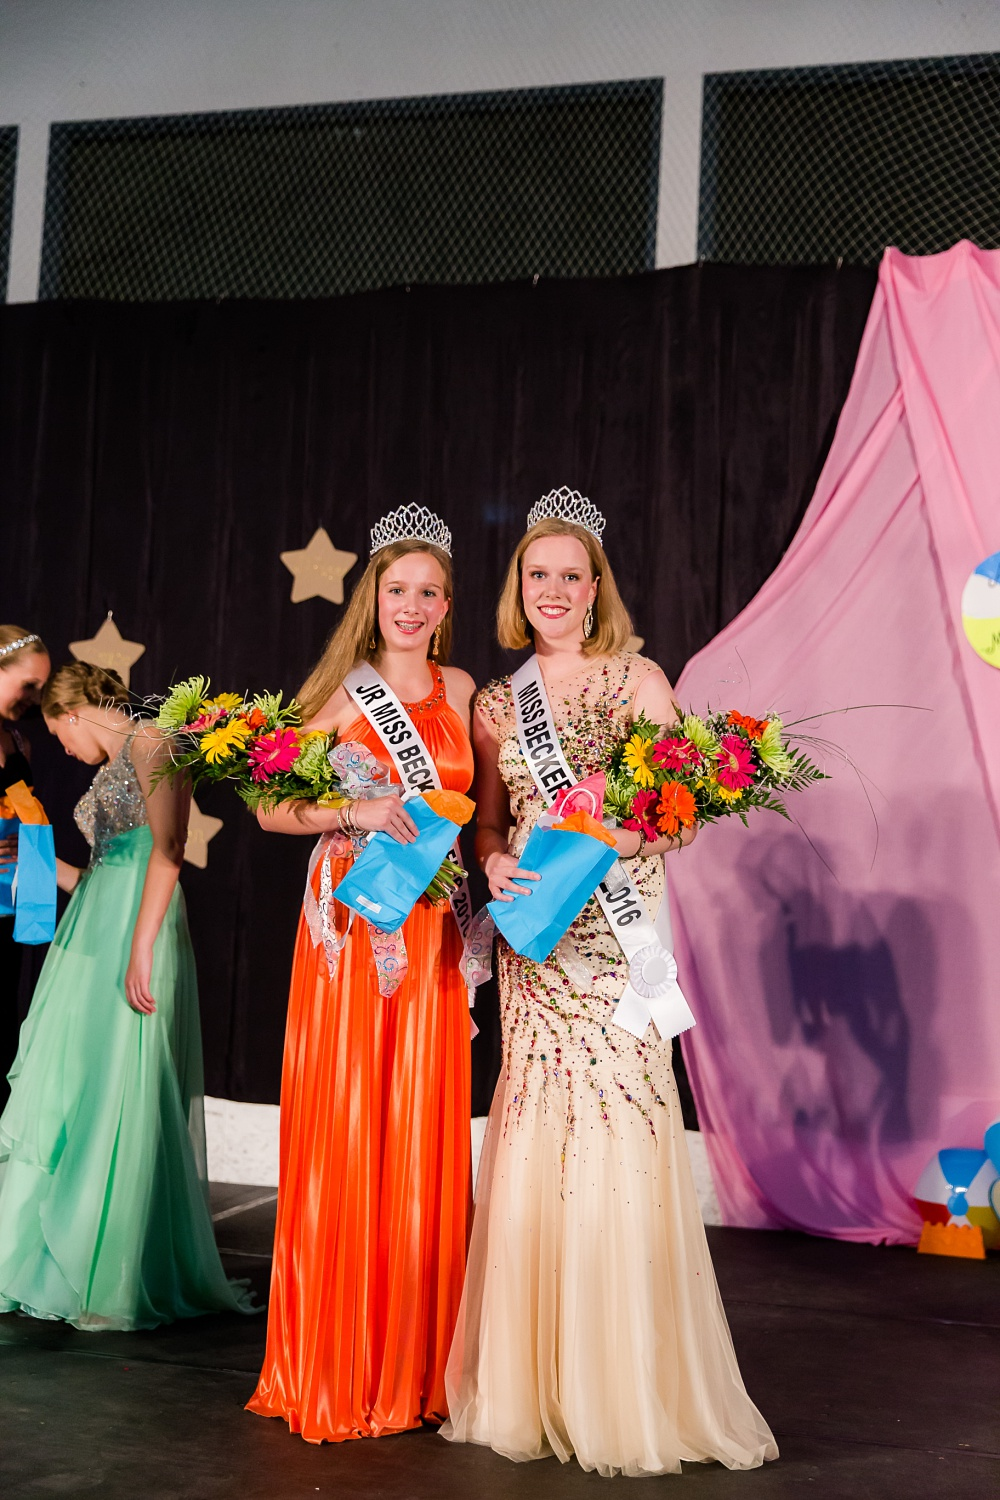 Miss Becker County Fair 2016 | Miss & Jr Miss Becker County Fair